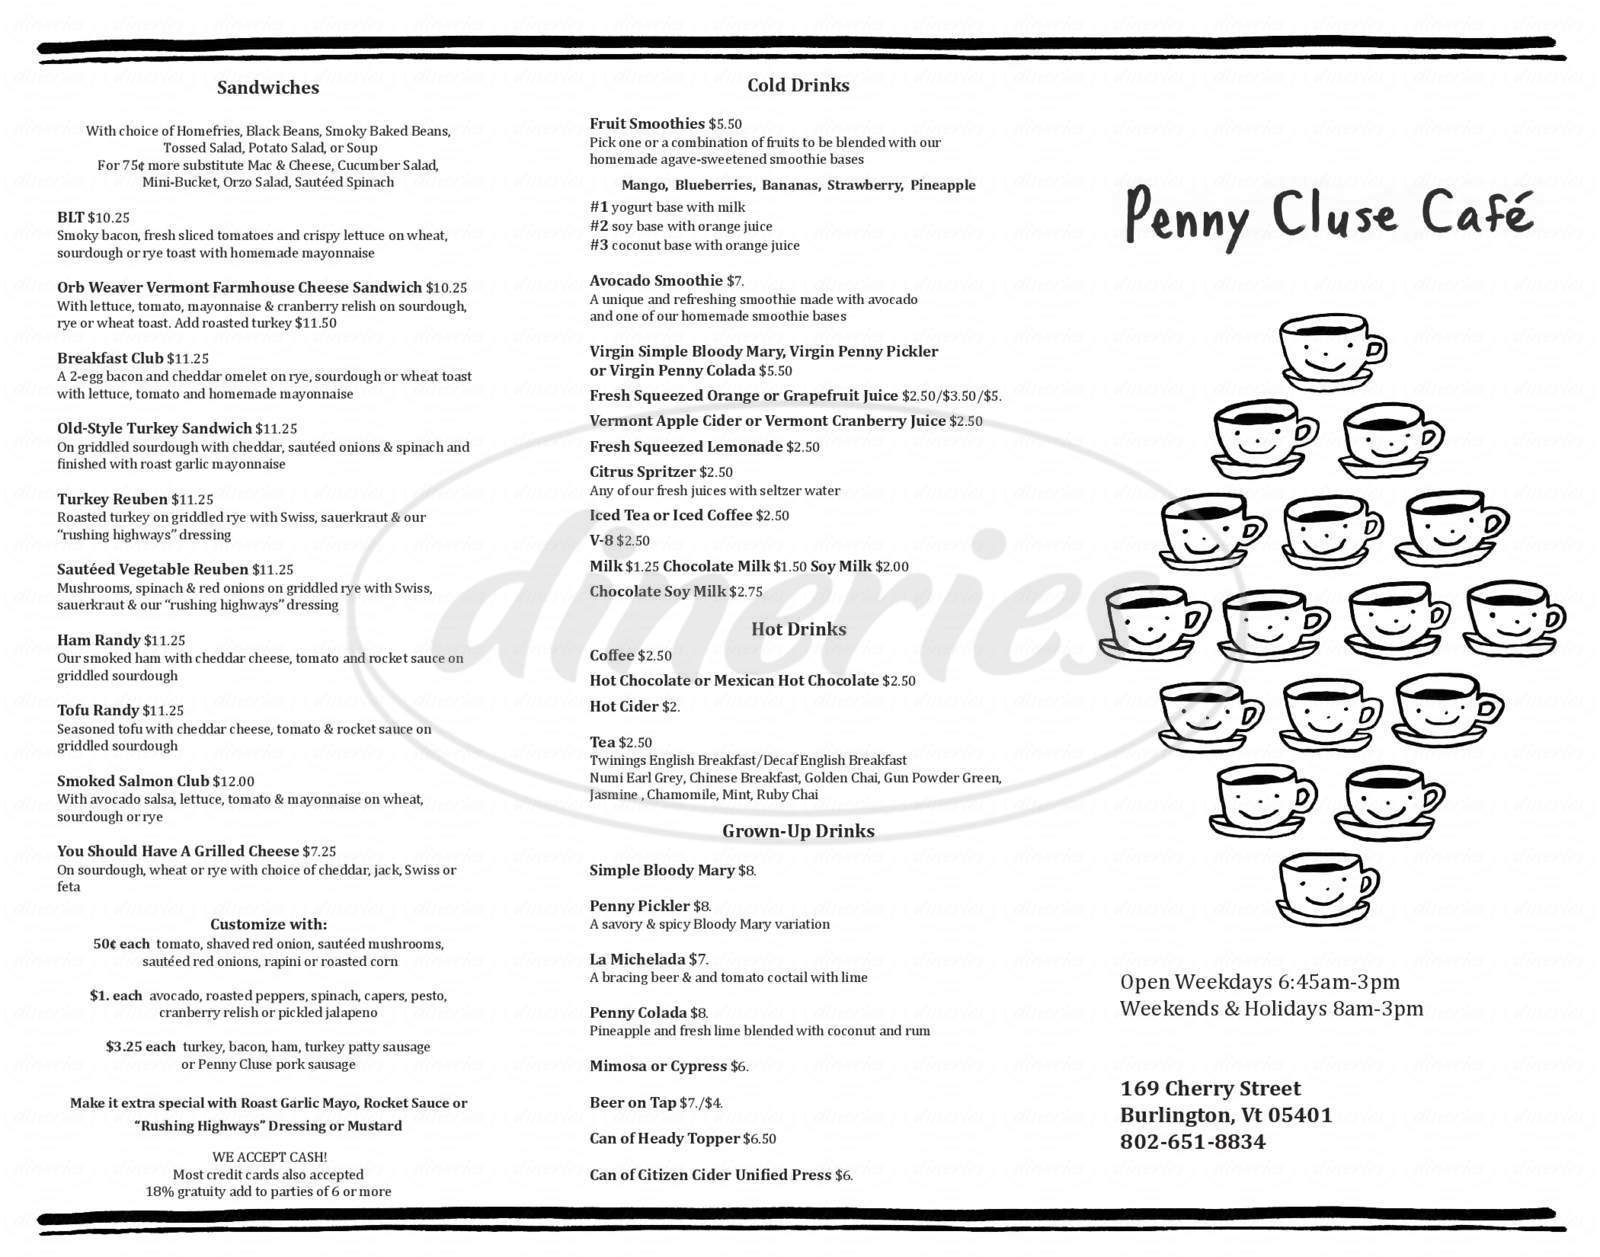 menu for Penny Cluse Cafe